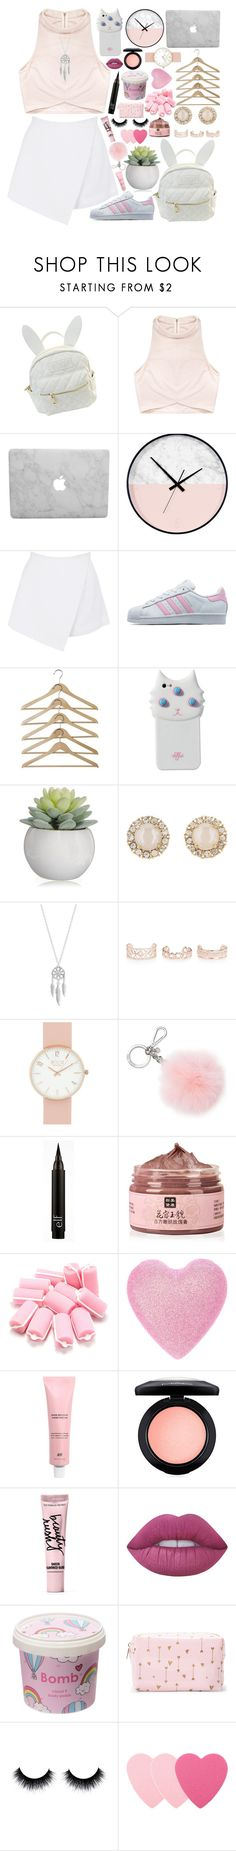 """""""That sounds fake, but okay"""" by skittlebum ❤ liked on Polyvore featuring cutekawaii, Rituals, BeginAgain Toys, adidas Originals, Valfré, Kate Spade, Lucky Brand, New Look, Michael Kors and MAC Cosmetics"""